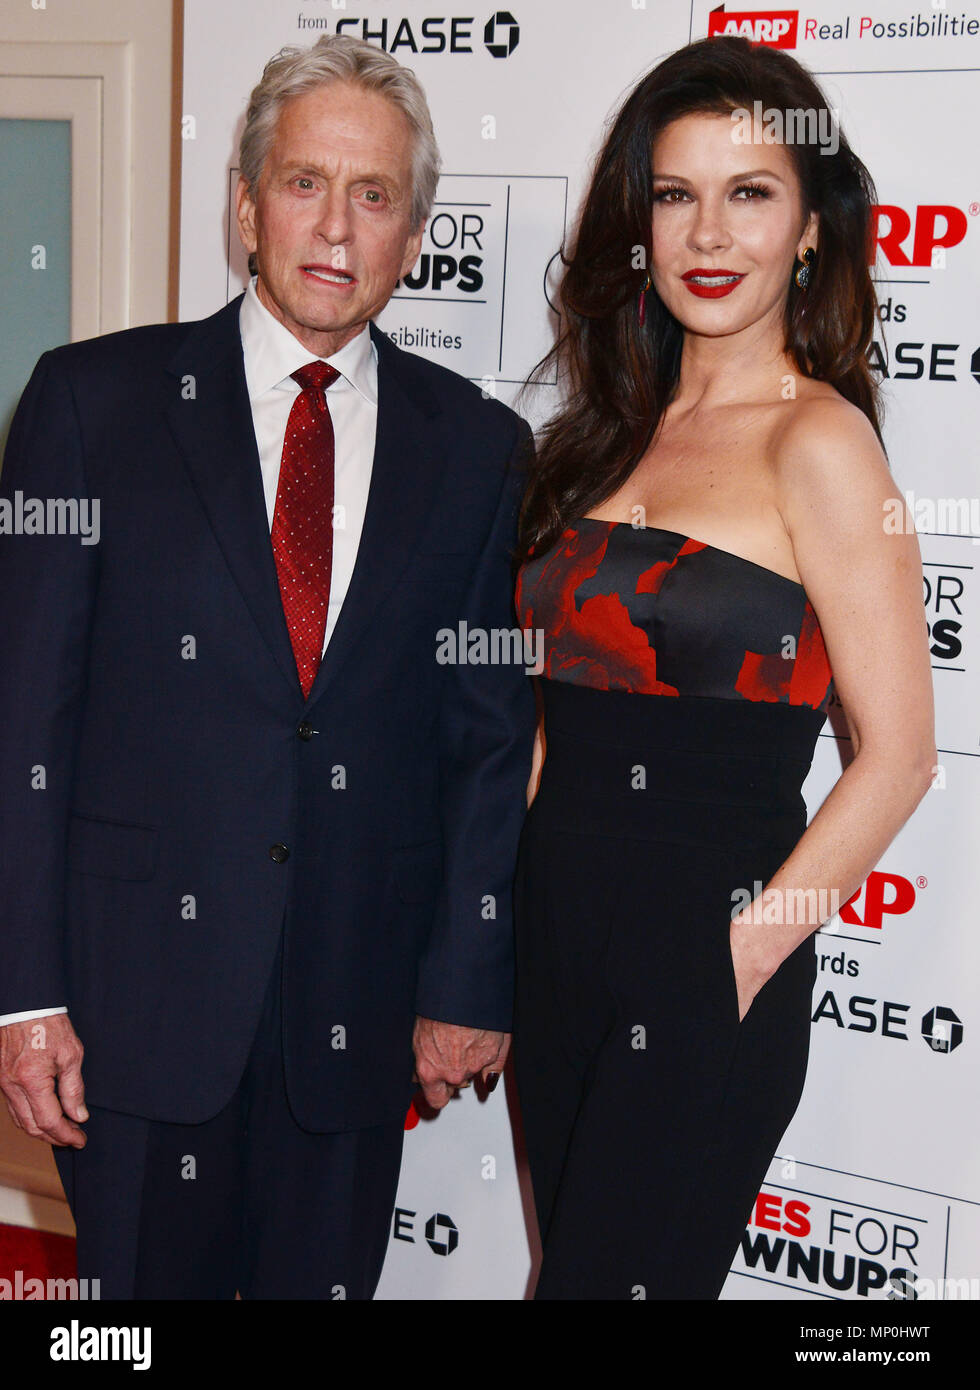 Michael Douglas, Catherine Zeta Jones 048 at the Movies For Grow Ups - AARP - at the Beverly Wilshire Hotel in Los Angeles. February 8, 2016.Michael Douglas, Catherine Zeta Jones 048 ------------- Red Carpet Event, Vertical, USA, Film Industry, Celebrities,  Photography, Bestof, Arts Culture and Entertainment, Topix Celebrities fashion /  Vertical, Best of, Event in Hollywood Life - California,  Red Carpet and backstage, USA, Film Industry, Celebrities,  movie celebrities, TV celebrities, Music celebrities, Photography, Bestof, Arts Culture and Entertainment,  Topix, vertical,  family from fro - Stock Image